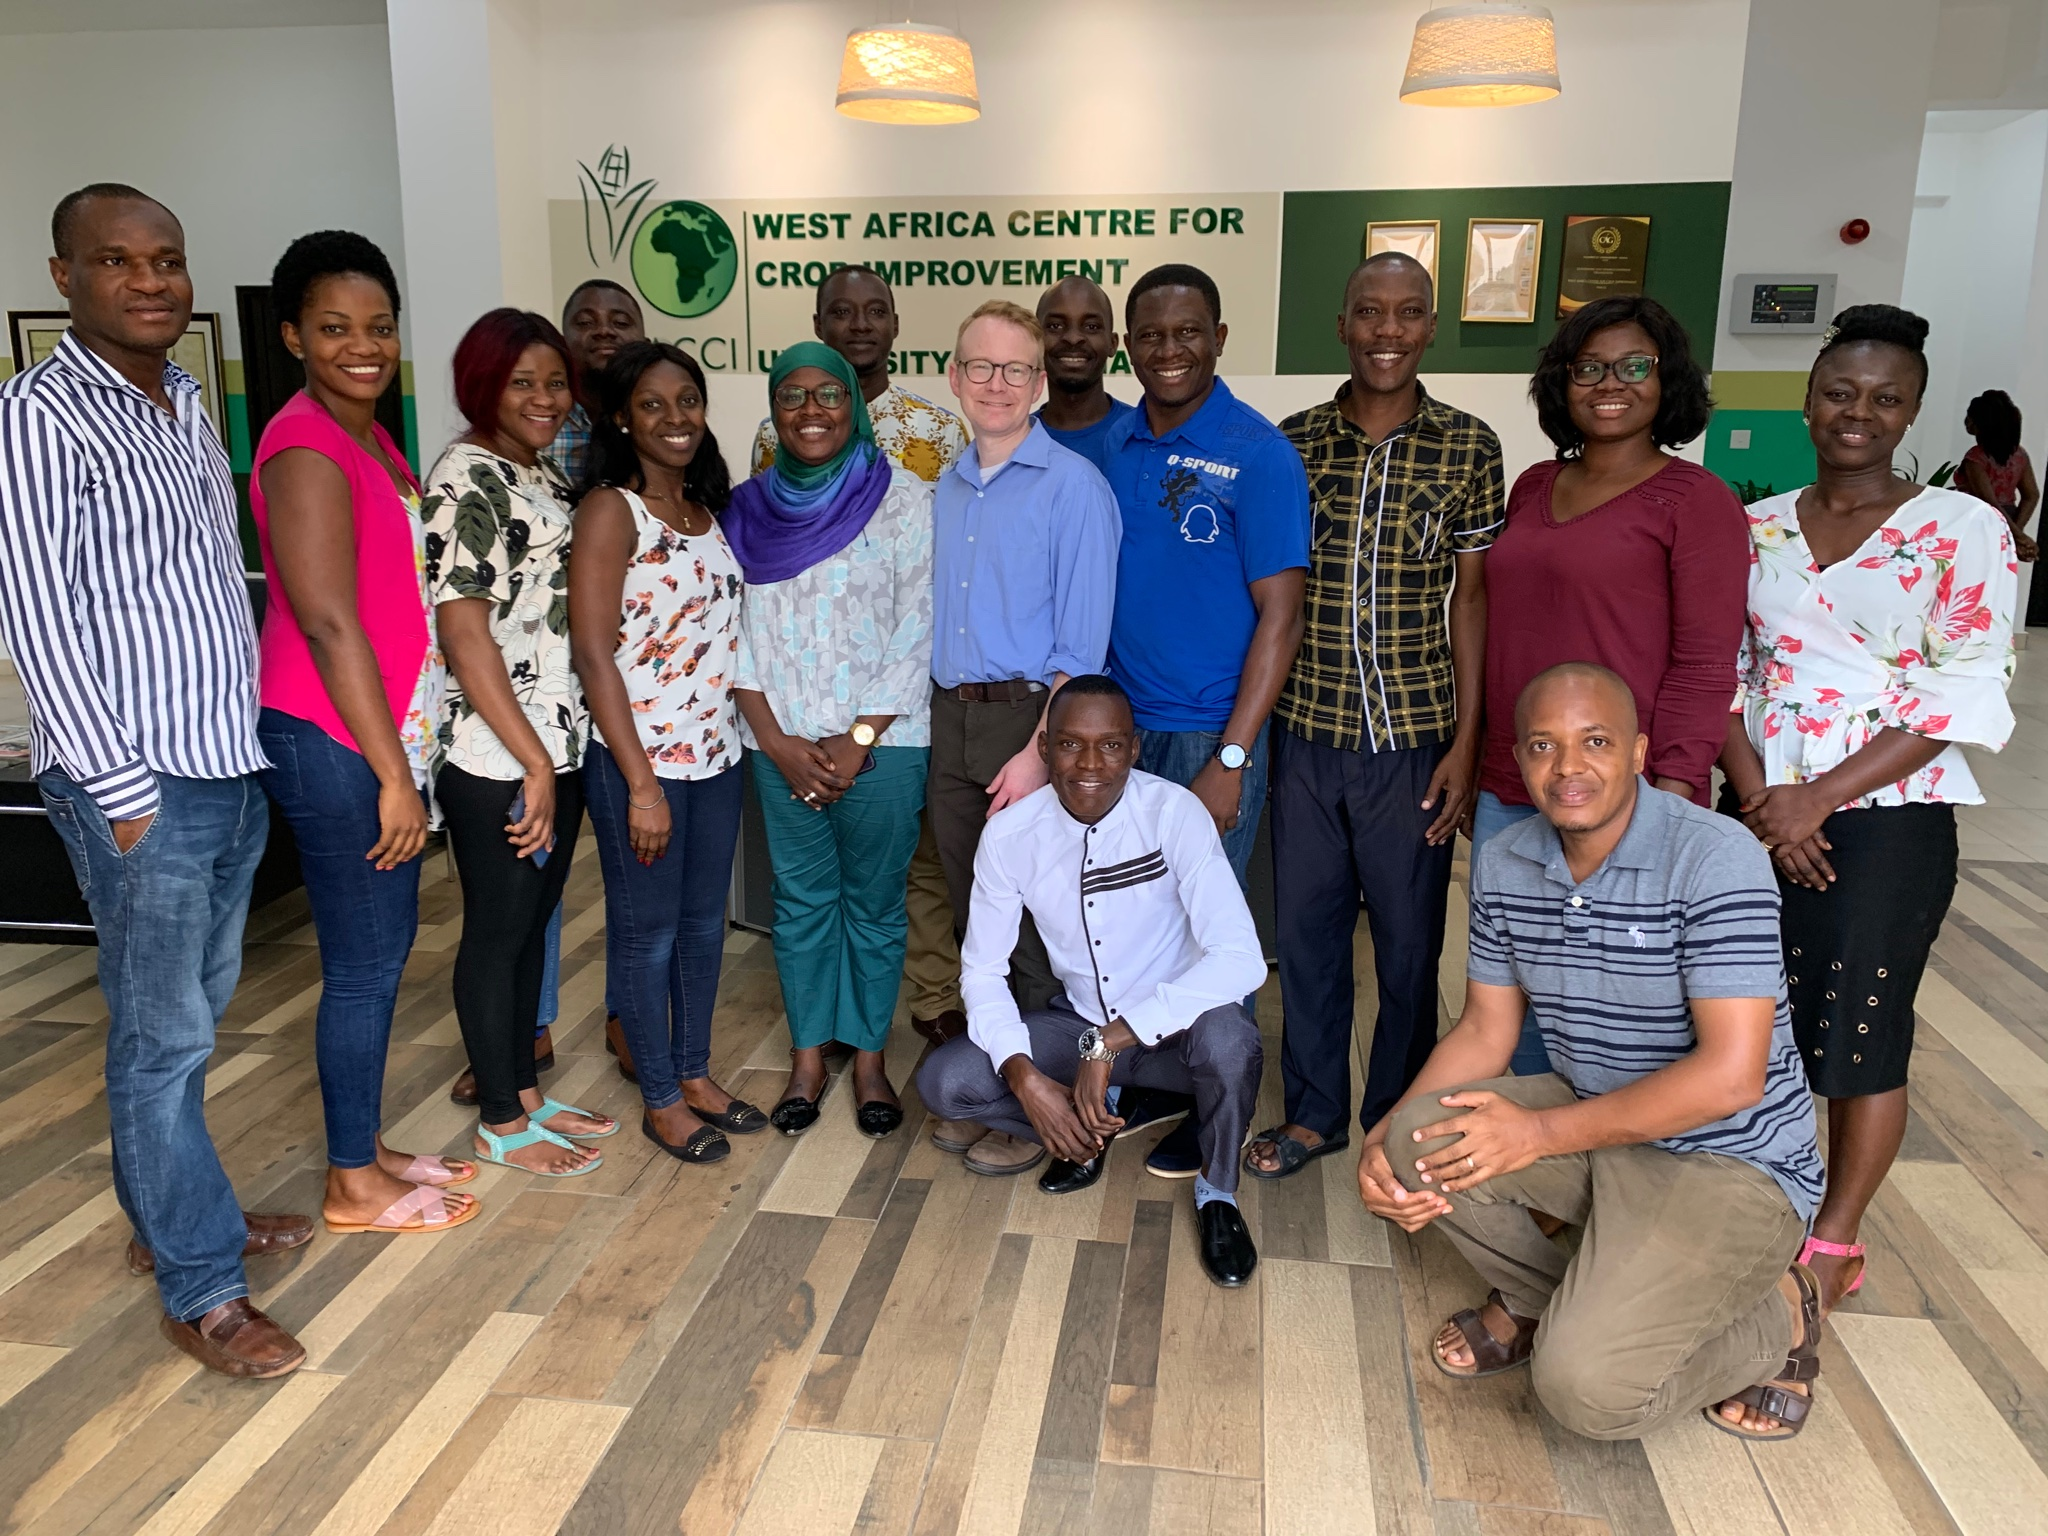 Dr. Willmann and some students of WACCI